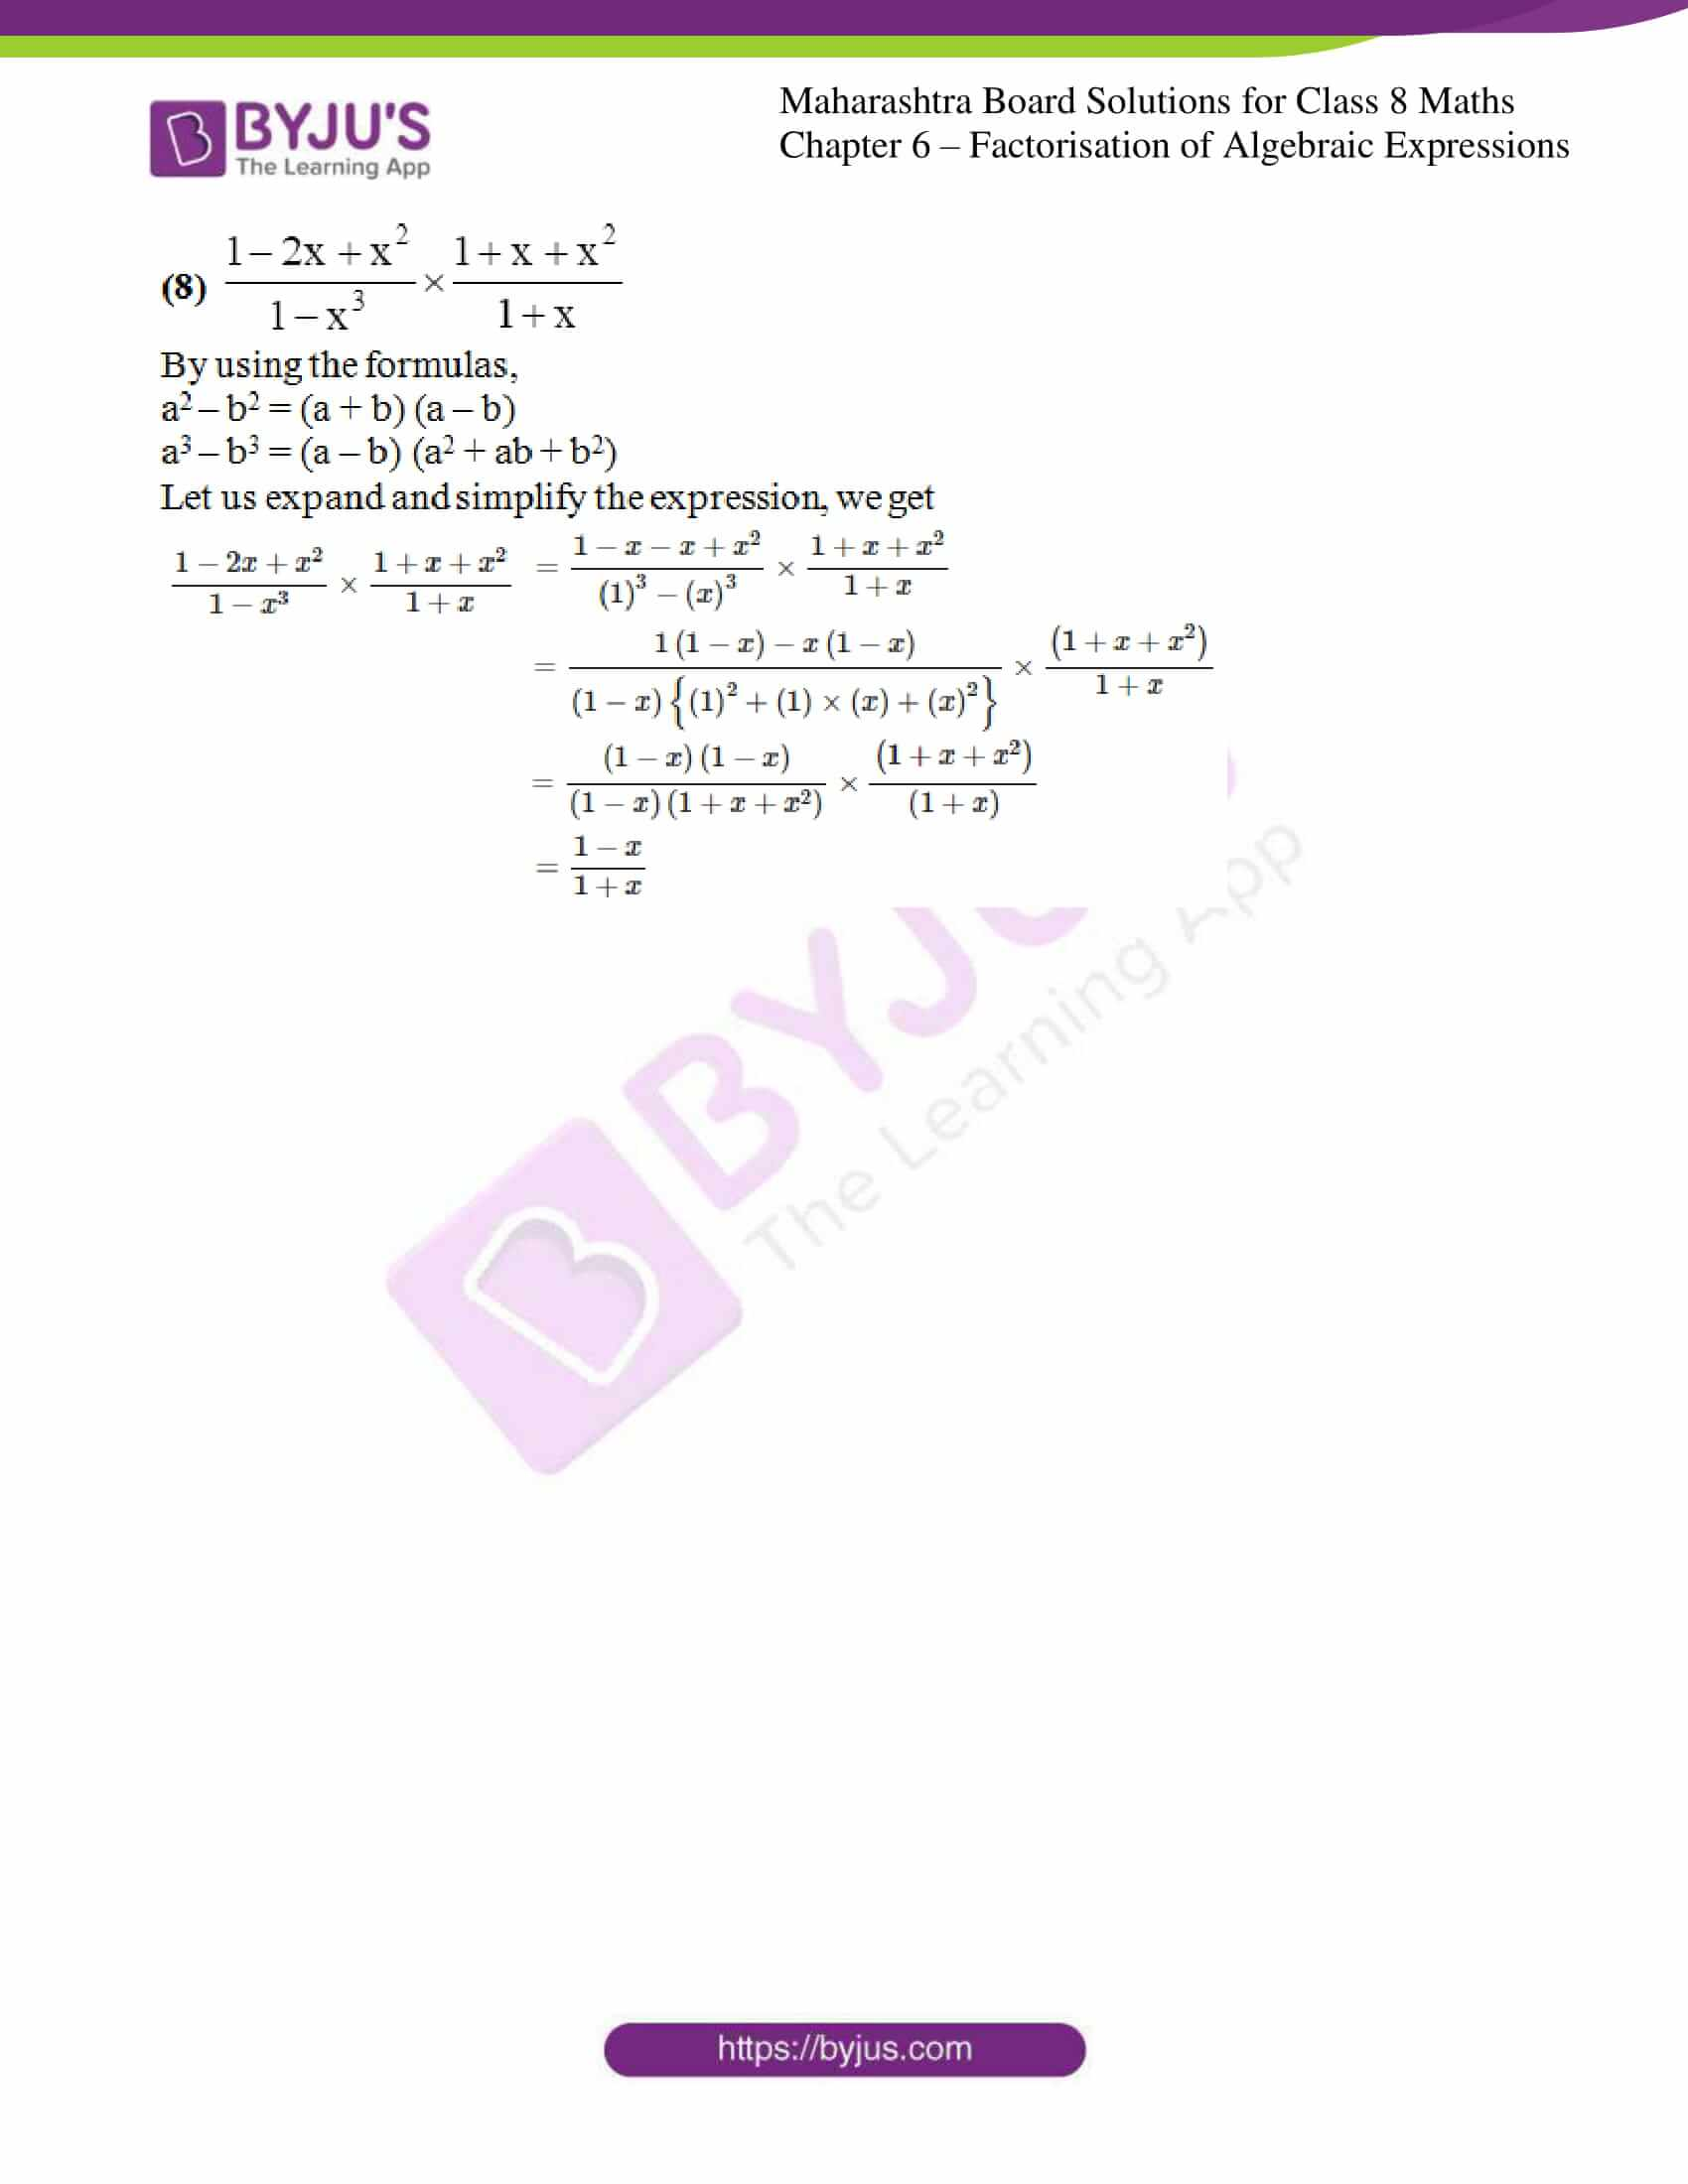 msbshse sol for class 8 maths chapter 6 16